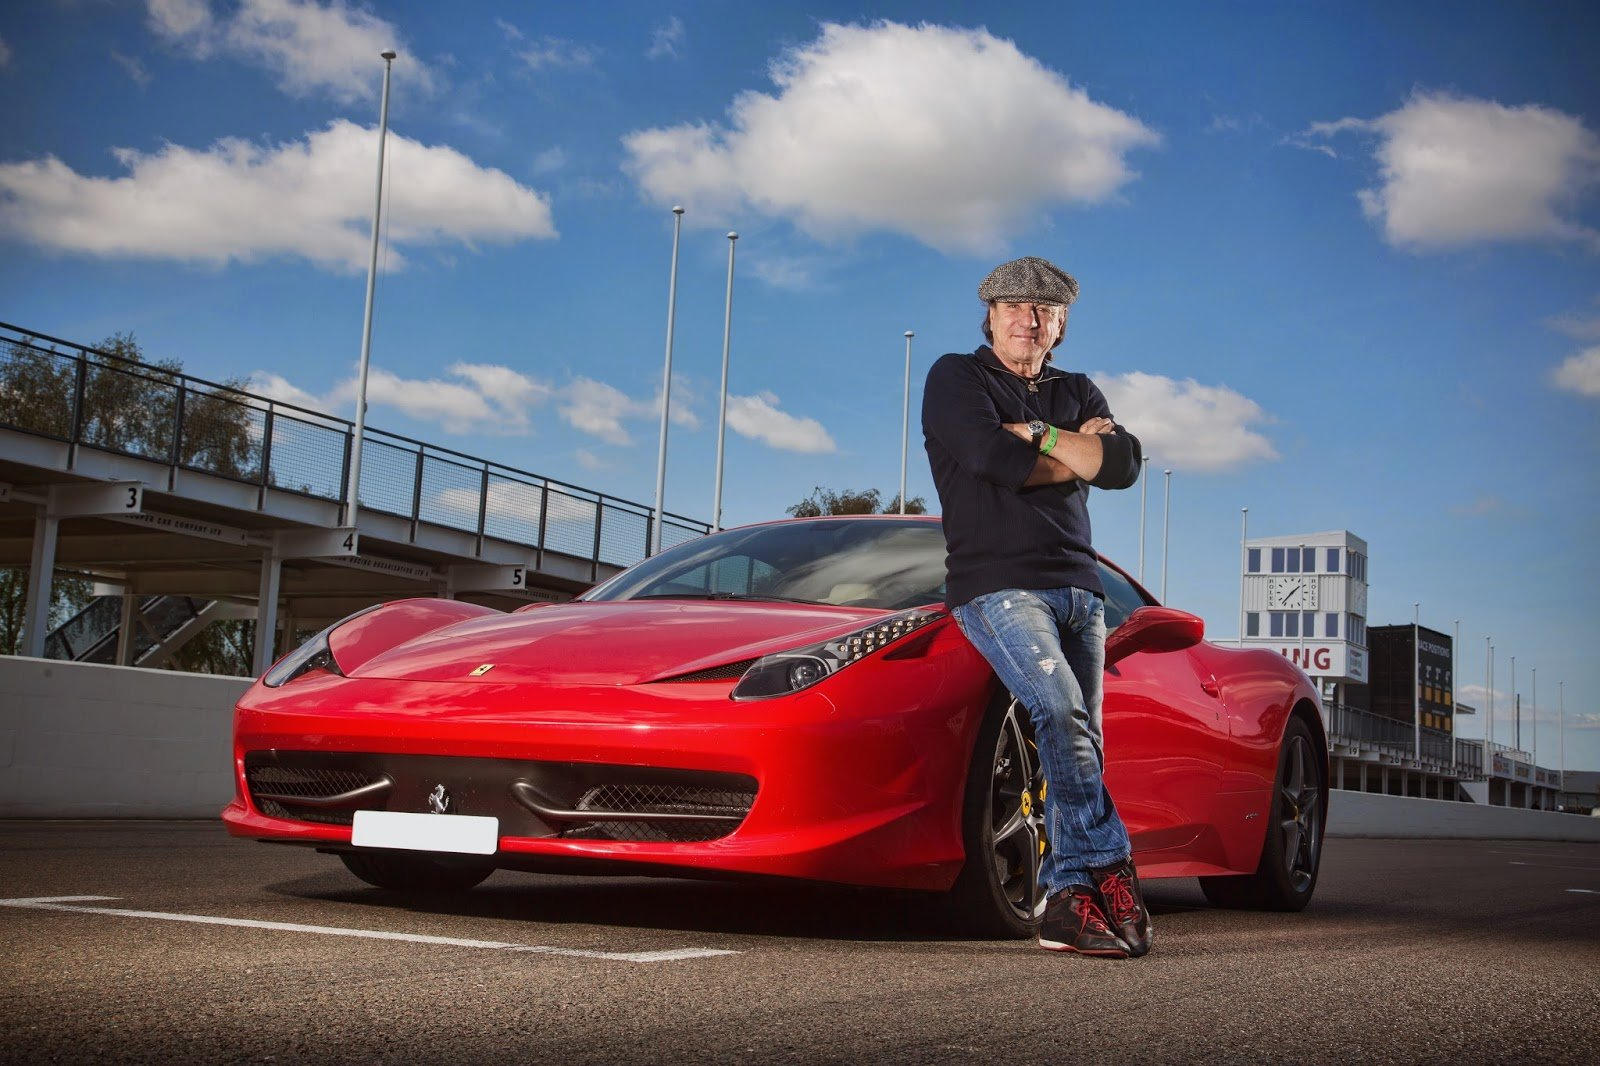 Brian Johnson posing for a picture with his Ferrari 458 Italia